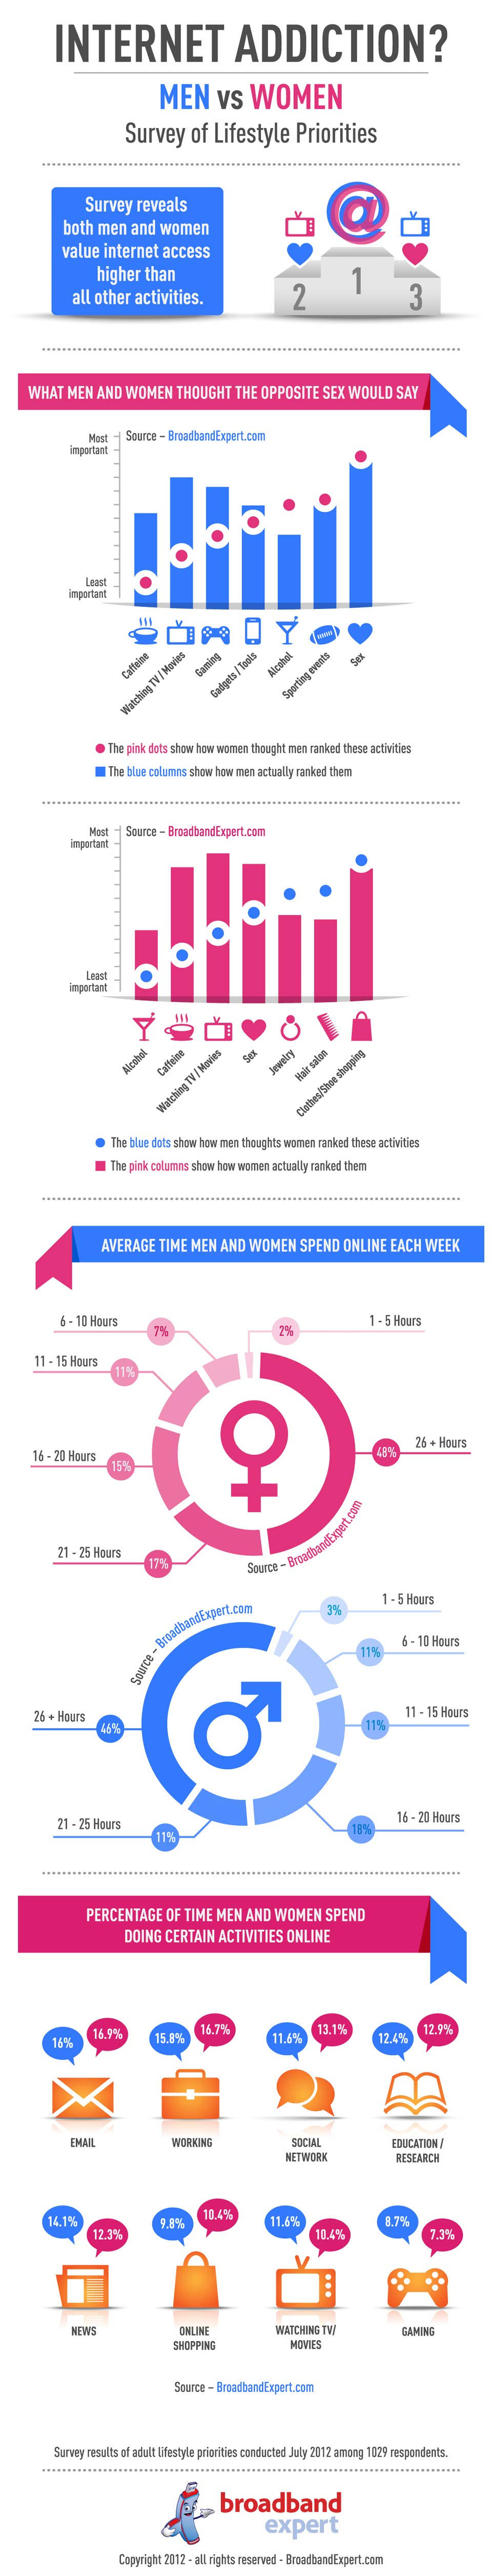 Internet Usage by Gender 2012-Infographic